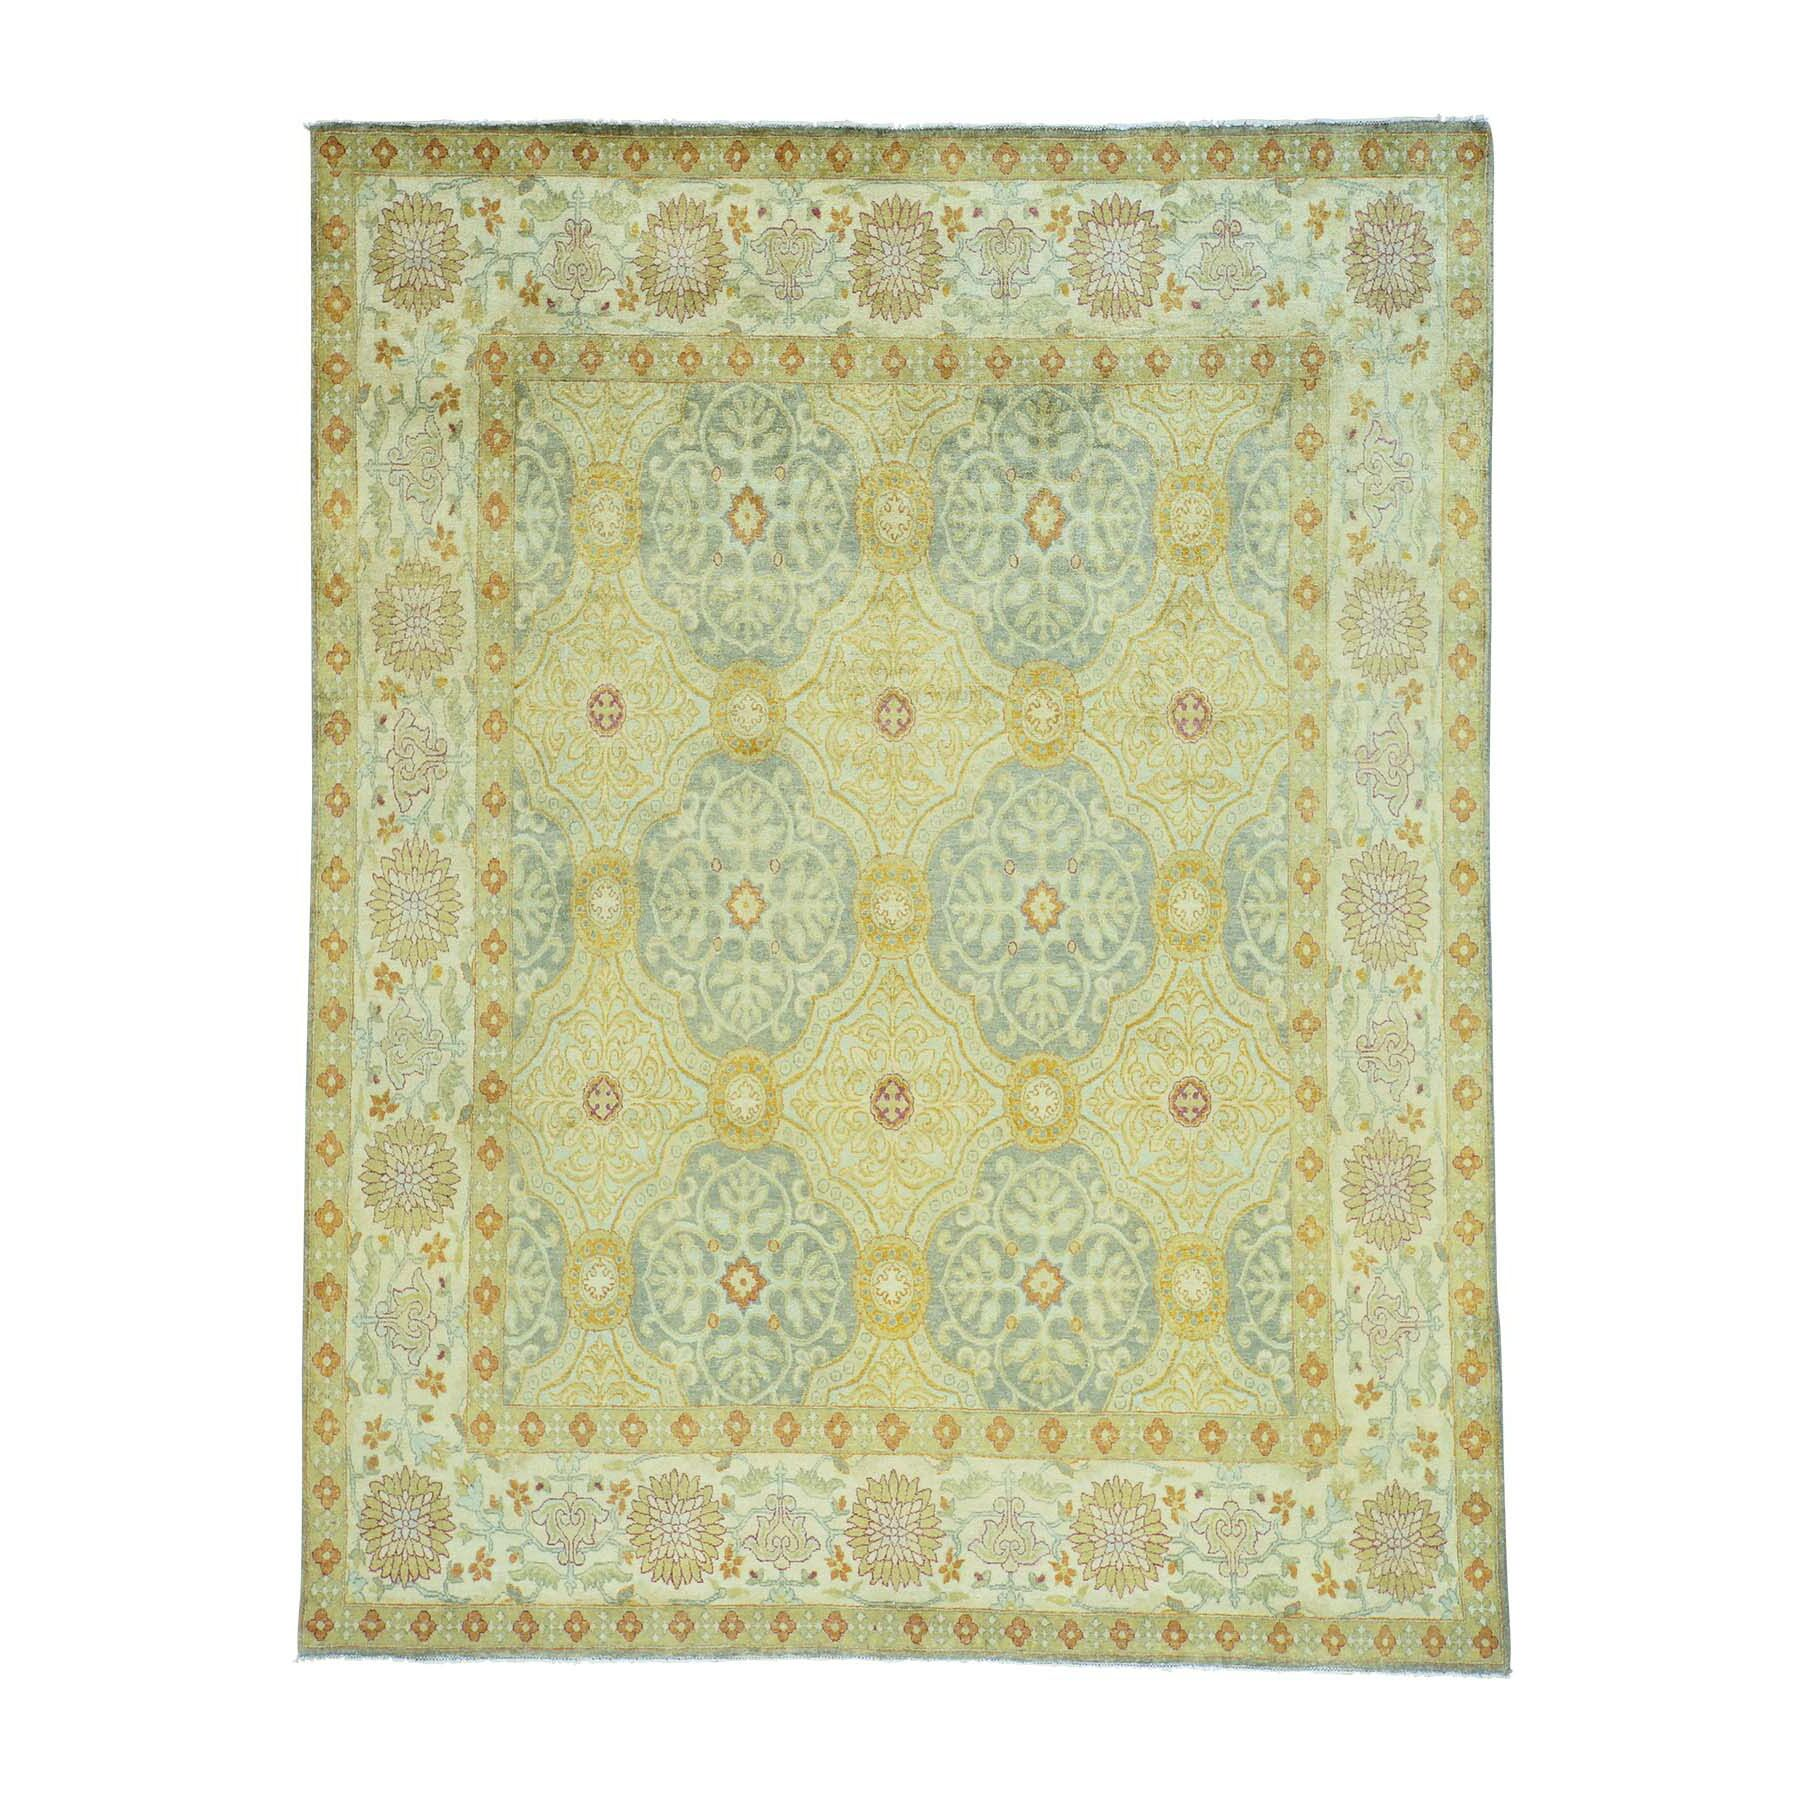 One-of-a-Kind Endo Neo Classic European Motifs Oriental Hand-Knotted Silk Gray/Yellow Area Rug